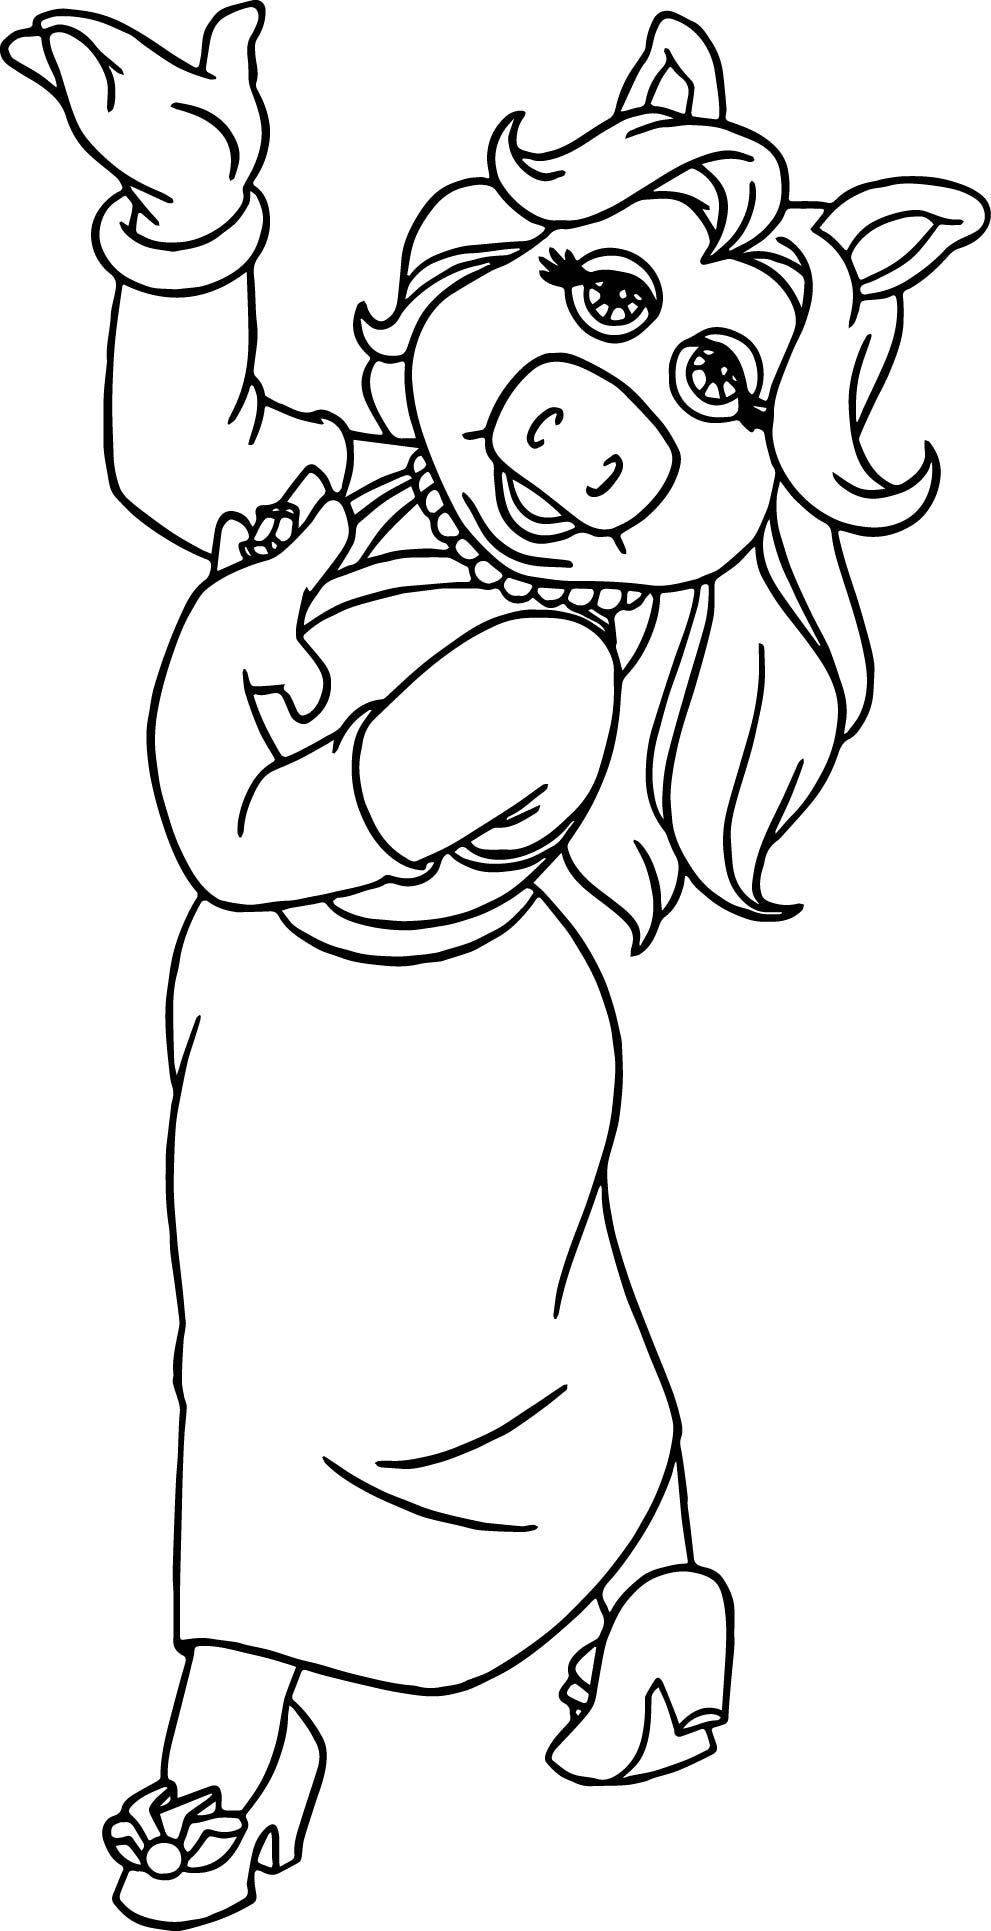 miss piggy coloring pages miss piggy from muppet babies coloring pages bulk color piggy miss pages coloring